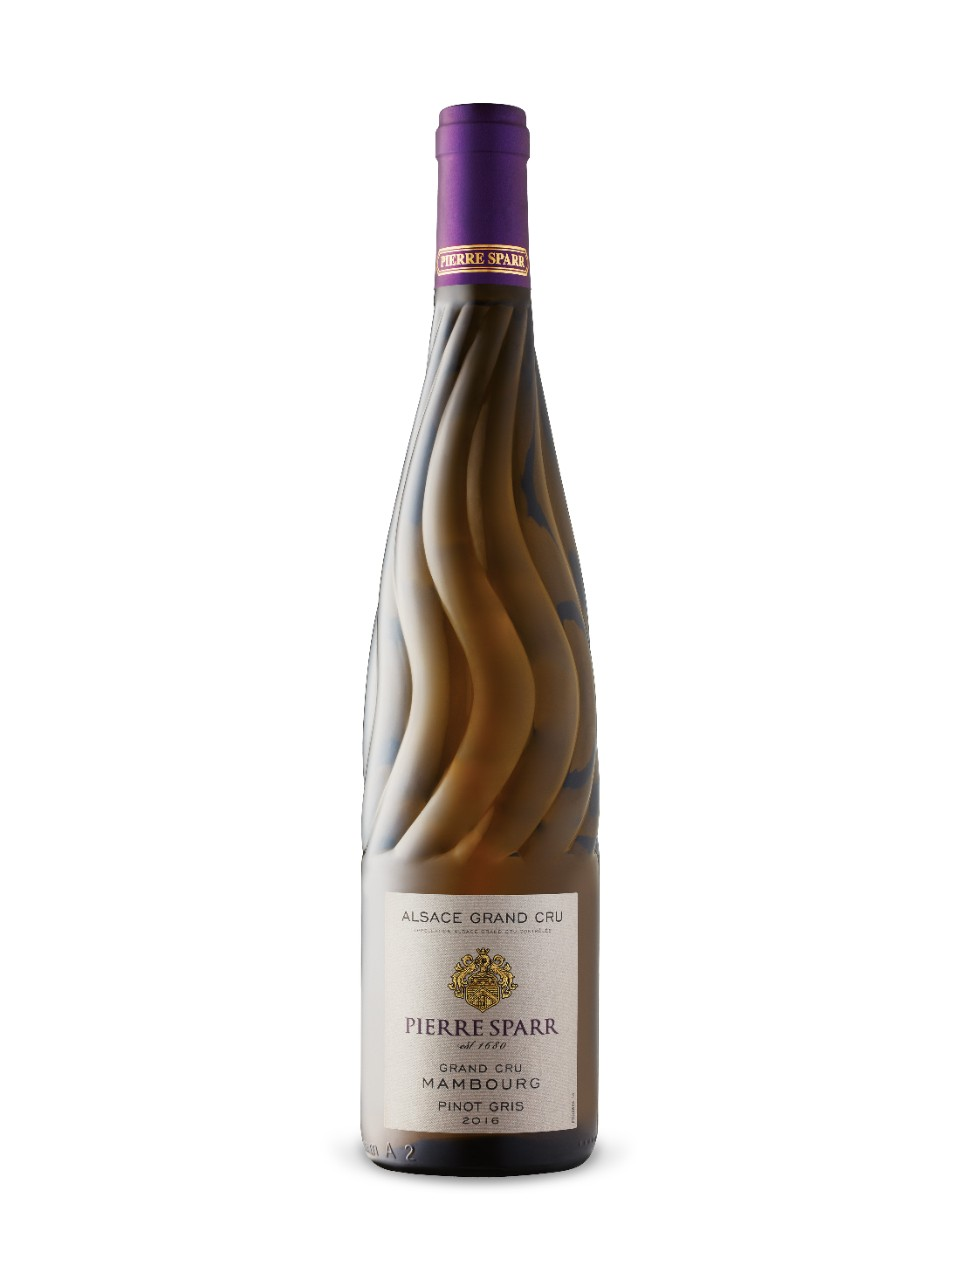 Pinot Gris Mambourg Pierre Sparr 2015